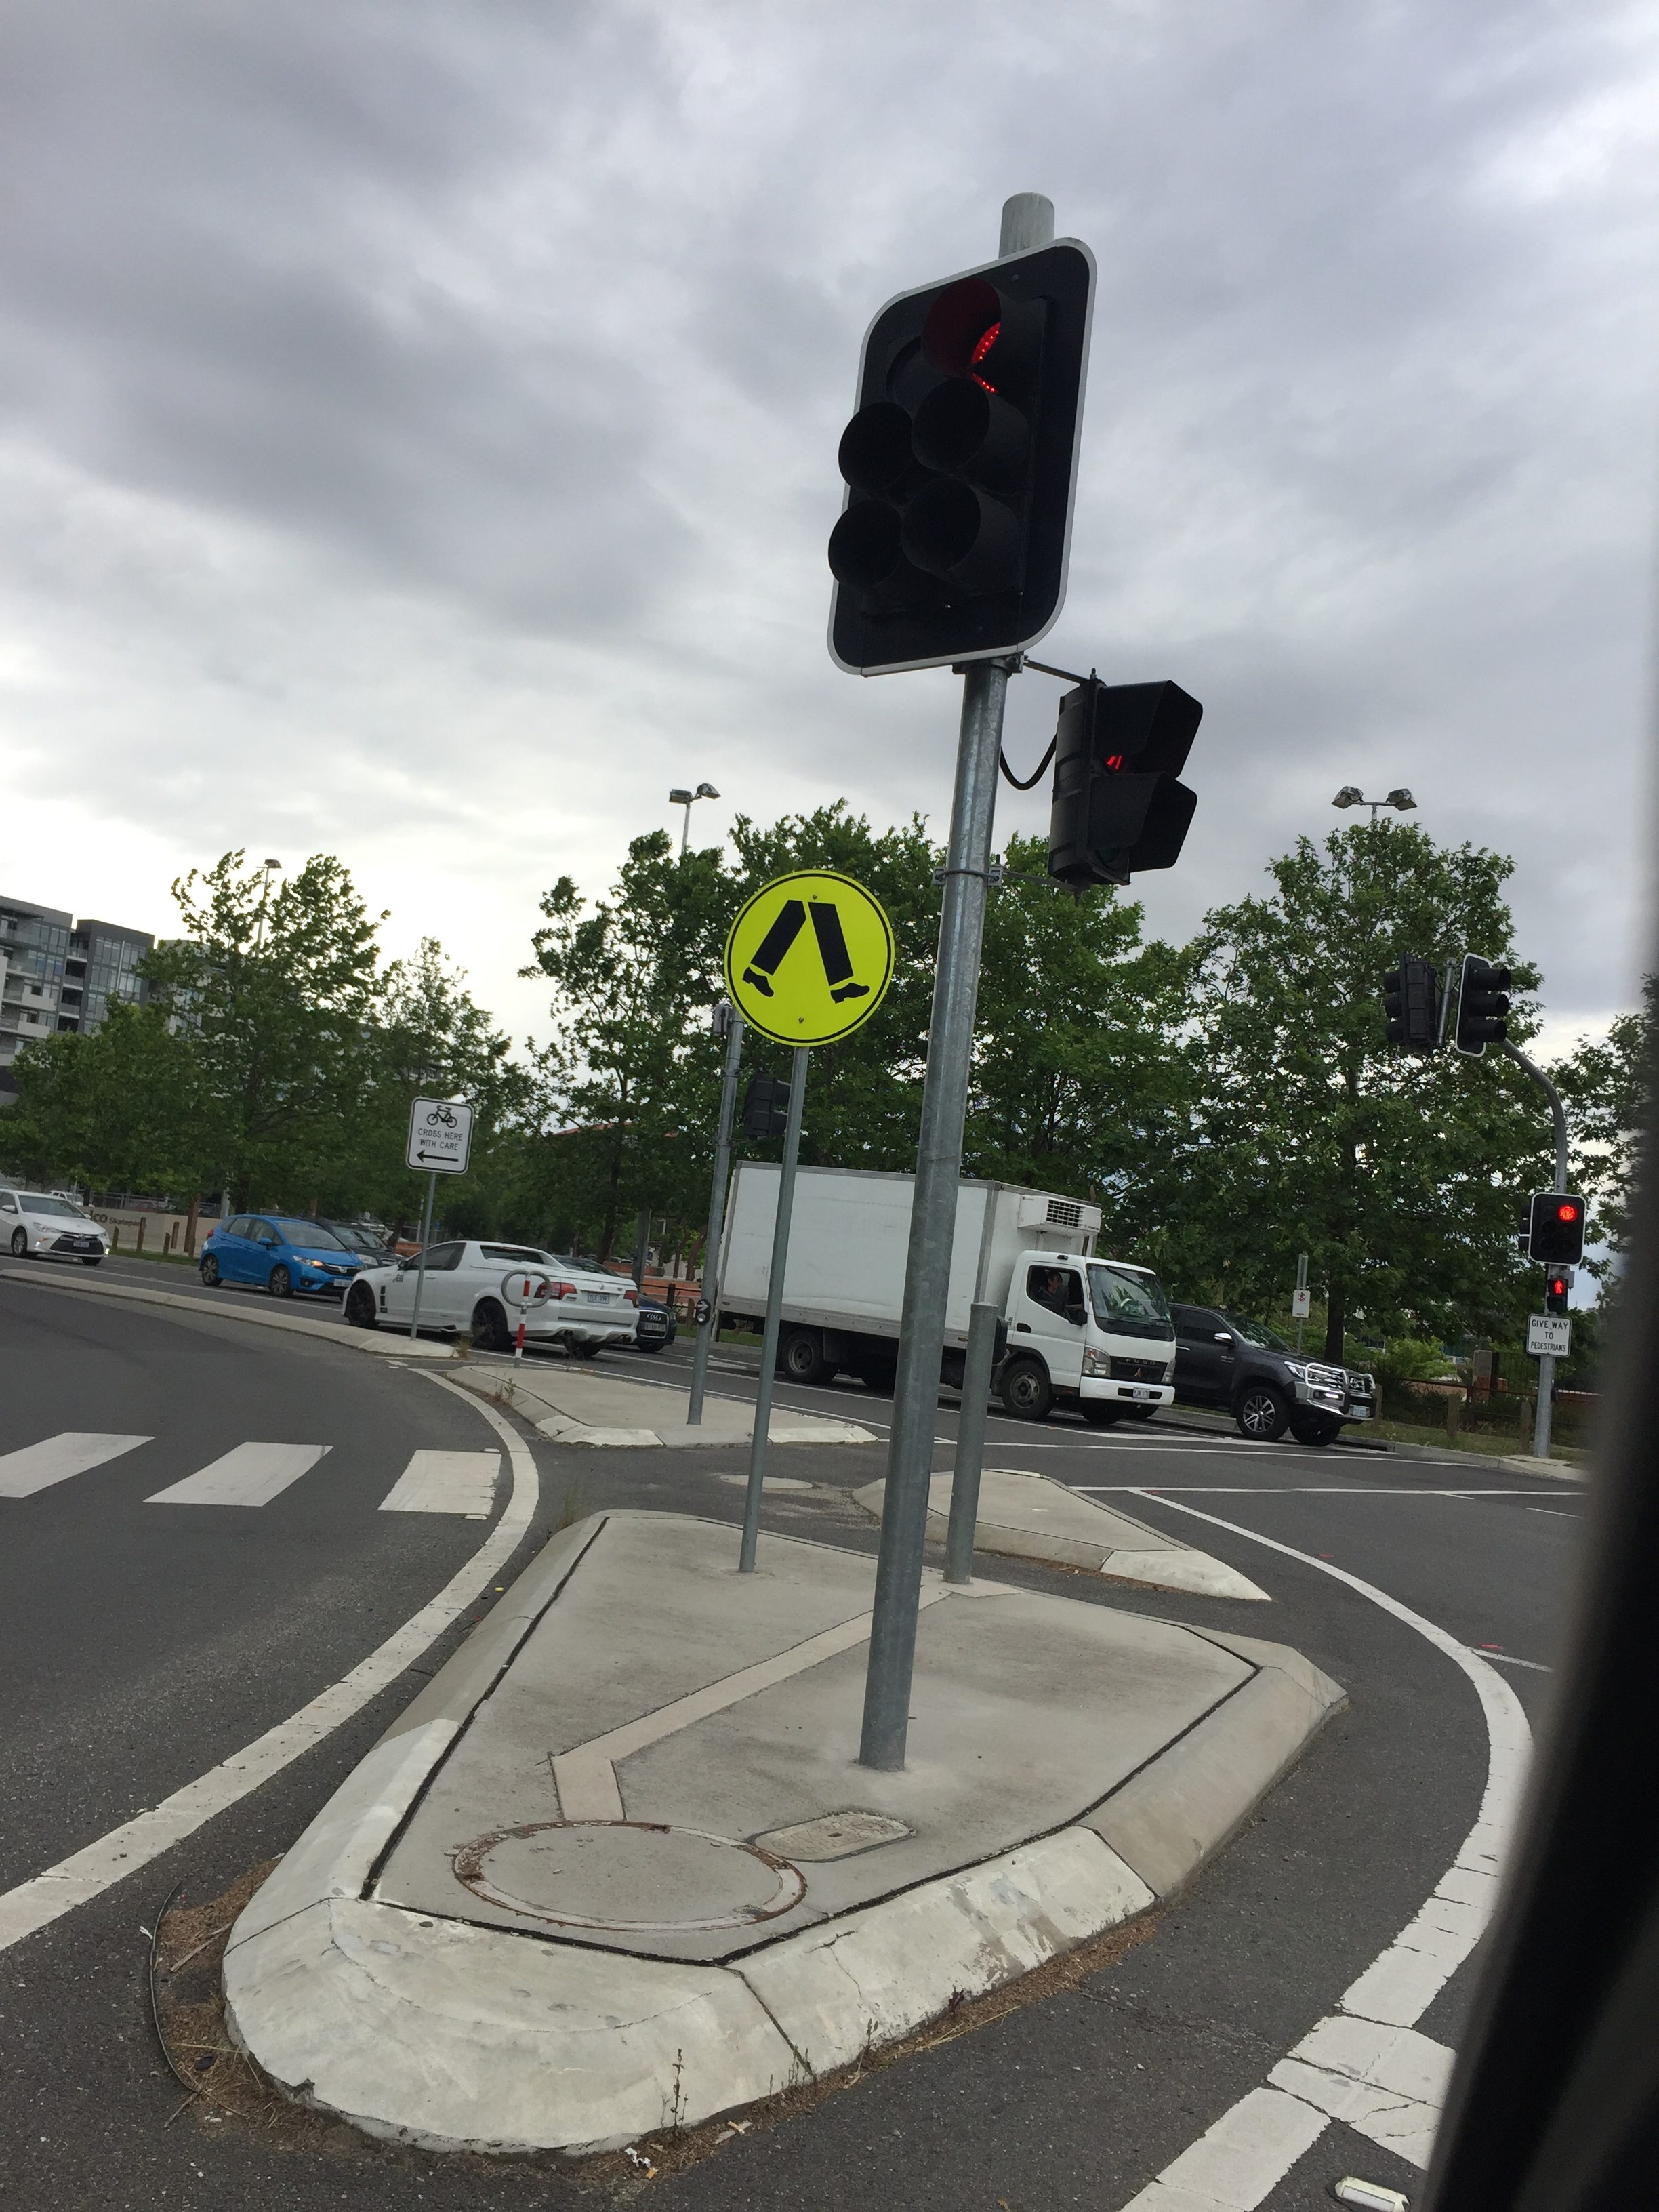 Australian pedestrian crossing sign of random legs